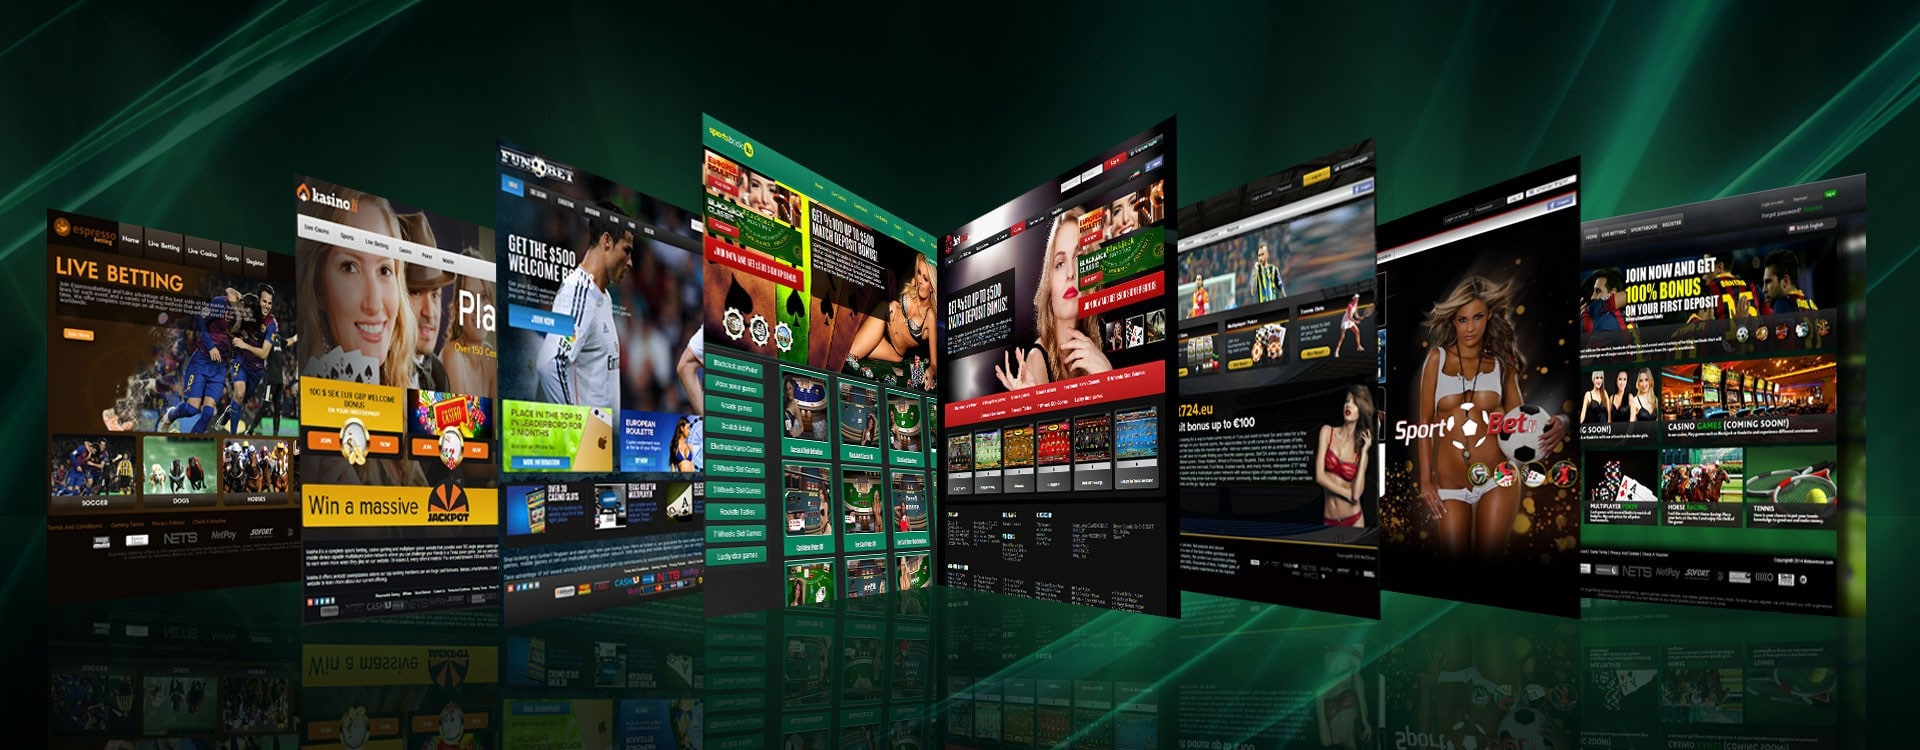 No-BS Guide to Picking an Online Sportsbook | BigOnSports